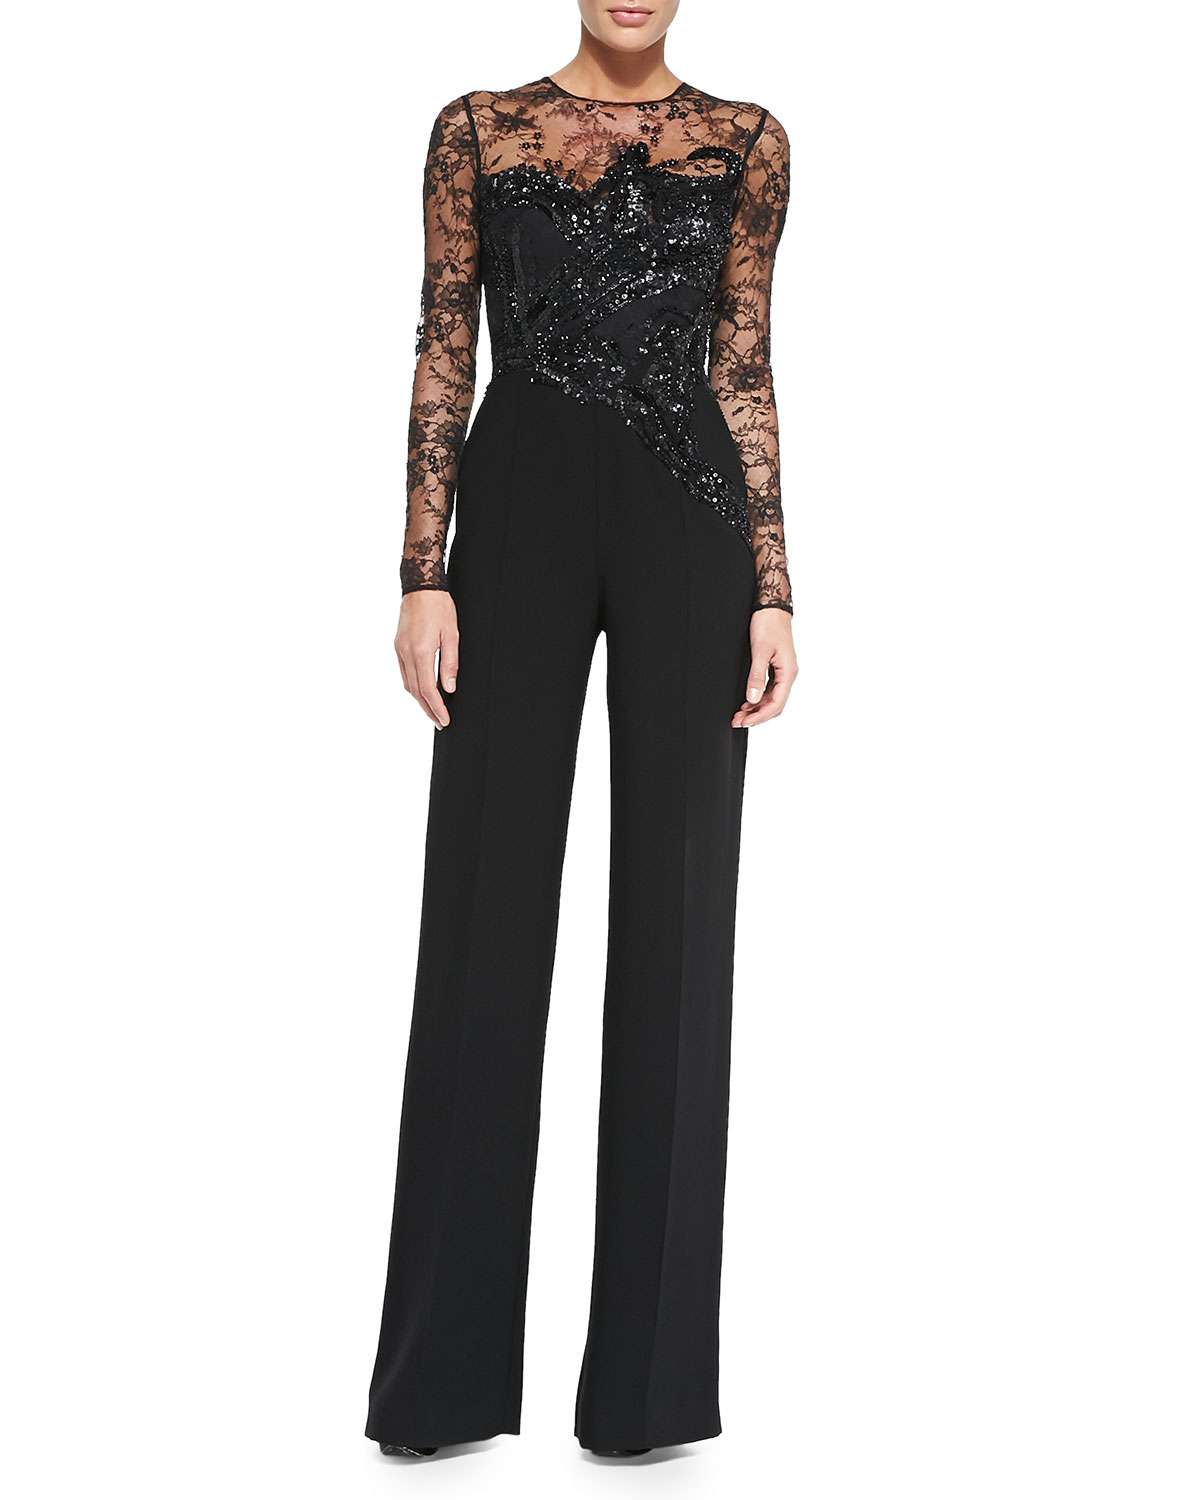 Shop for DEEP GRAY XL Long Sleeve Front Lace Up Jumpsuit online at $ and discover fashion at jomp16.tk lace up jumpsuits long sleeve cover up long sleeve jumpsuits lace up pants Elegant Black Lace Dress Christmas Long Sleeve T Shirt Plus Long Sleeve Formal Dress Plain Blue Long Sleeve Dress. Size jomp16.tk: Rosegal.